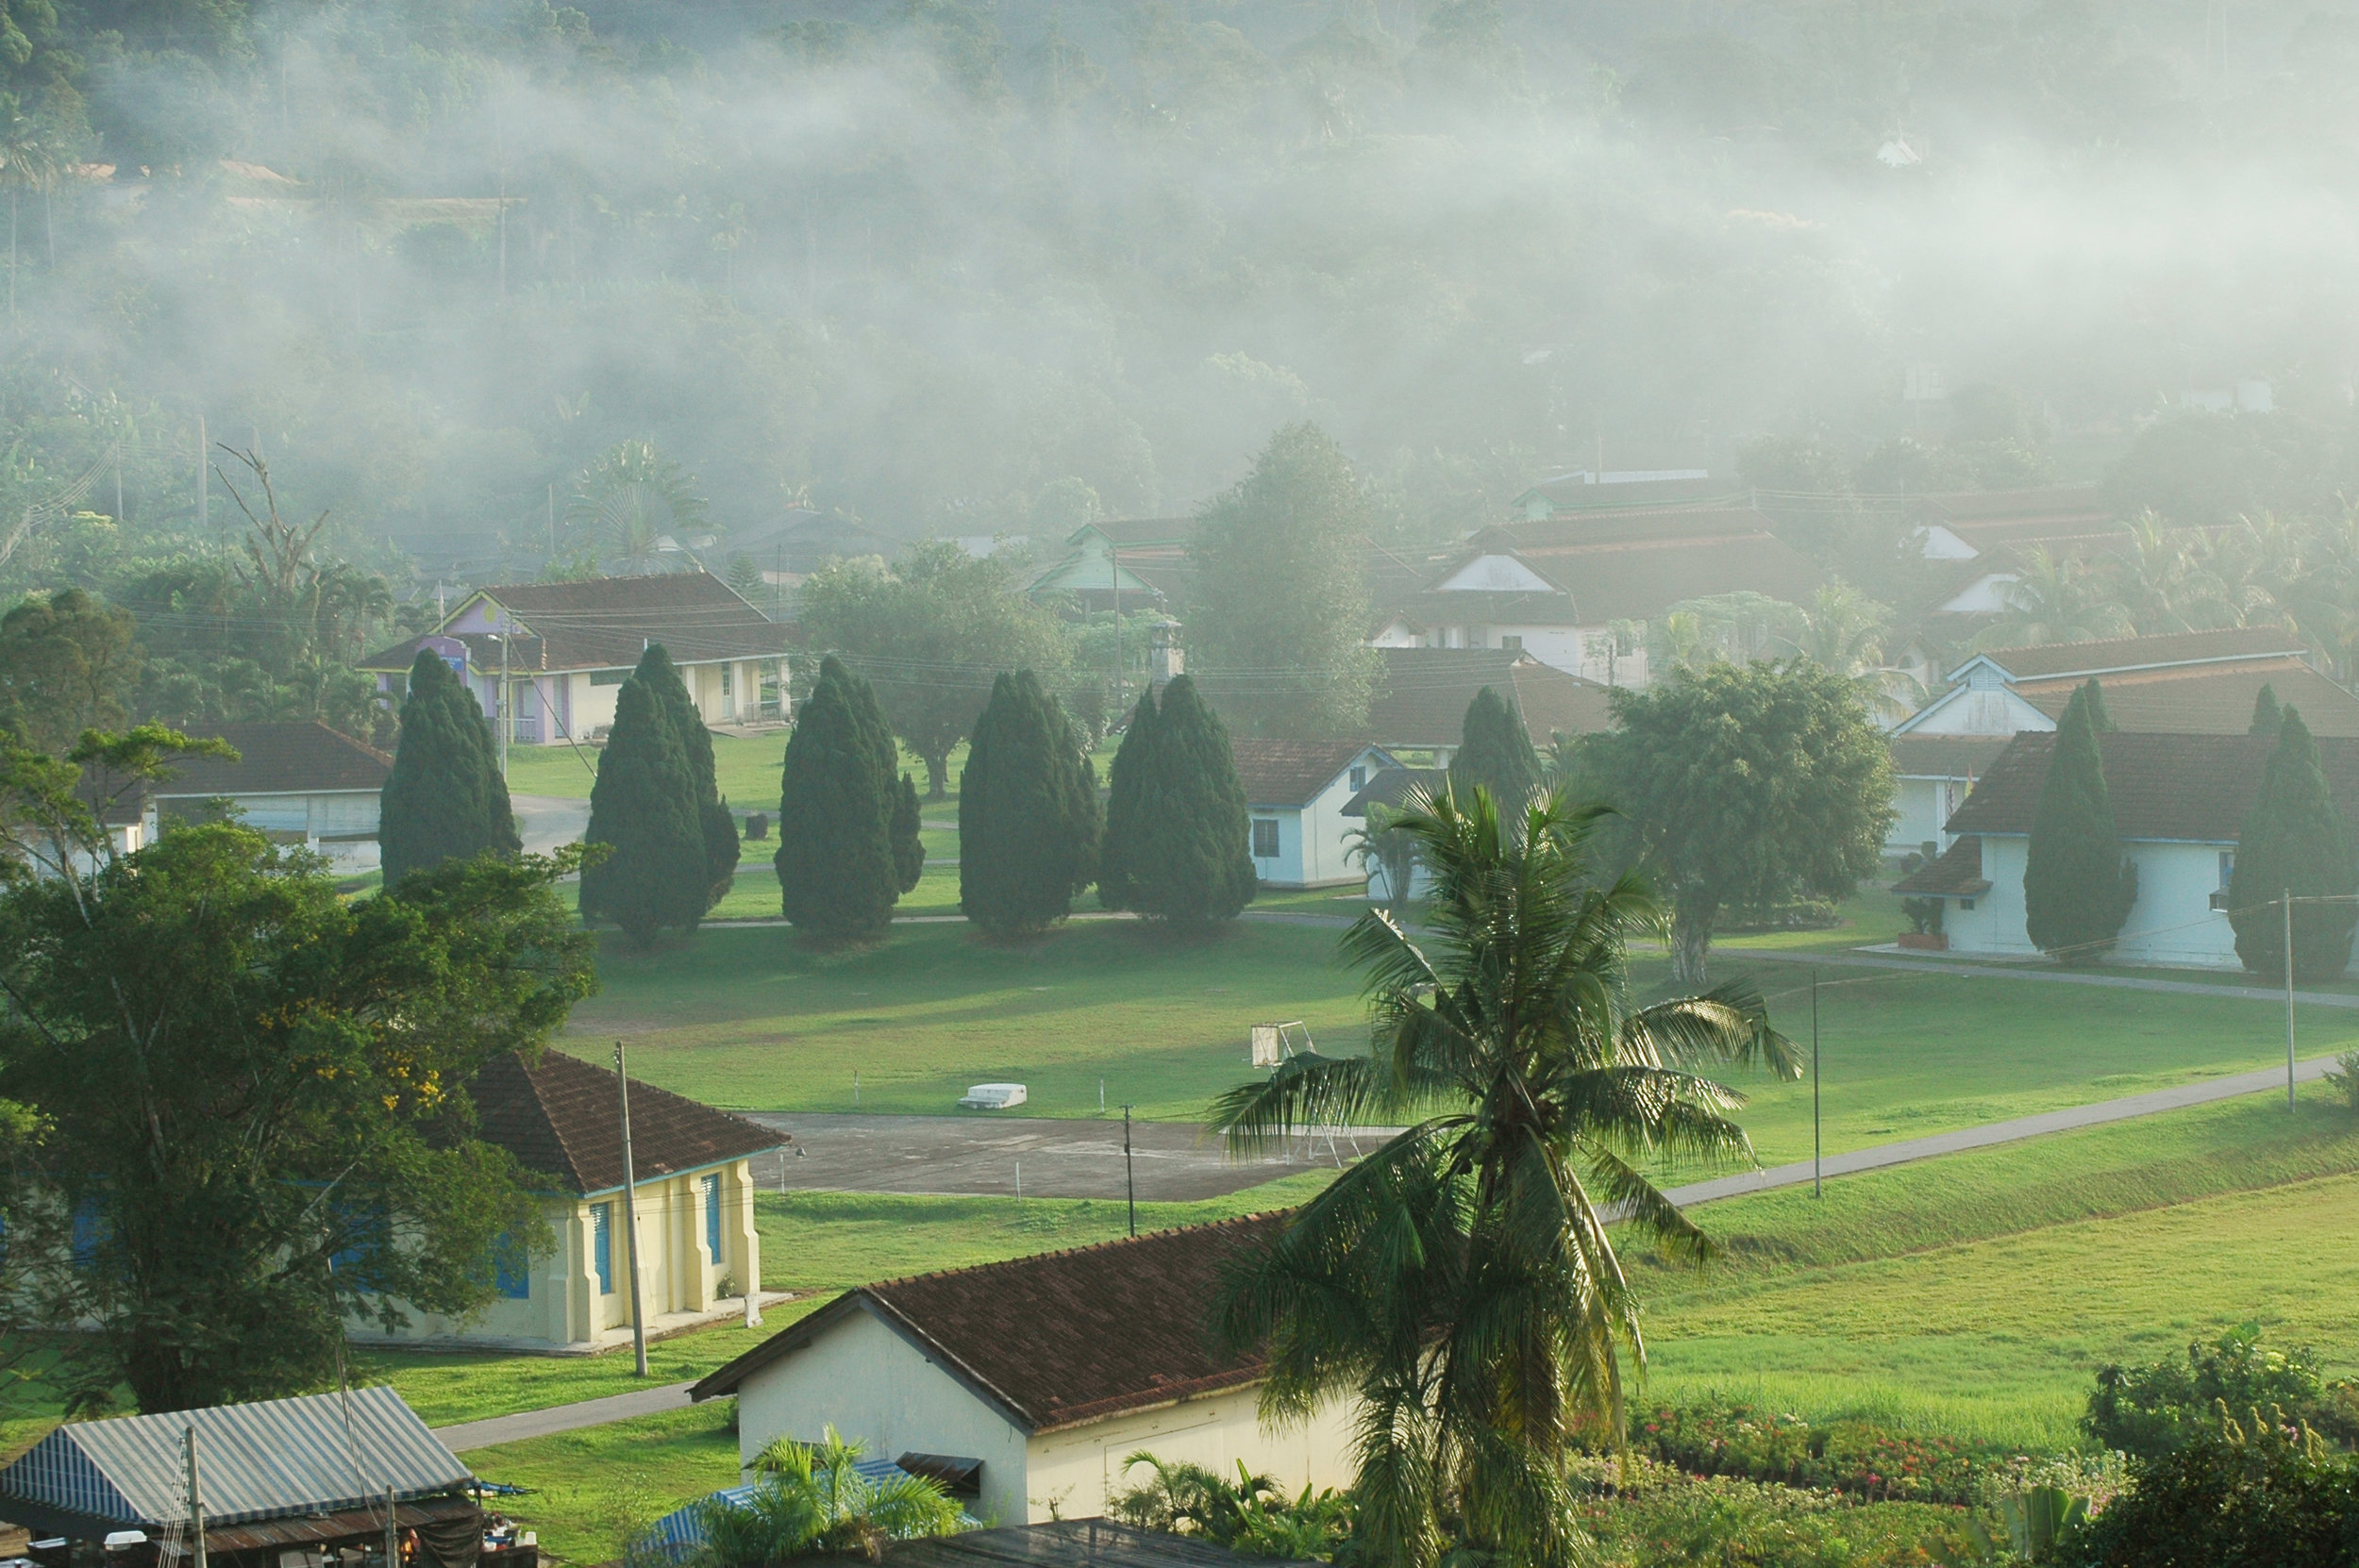 The tranquil look of the settlement in the early morning. (photo by Dr Lim Yong Long)